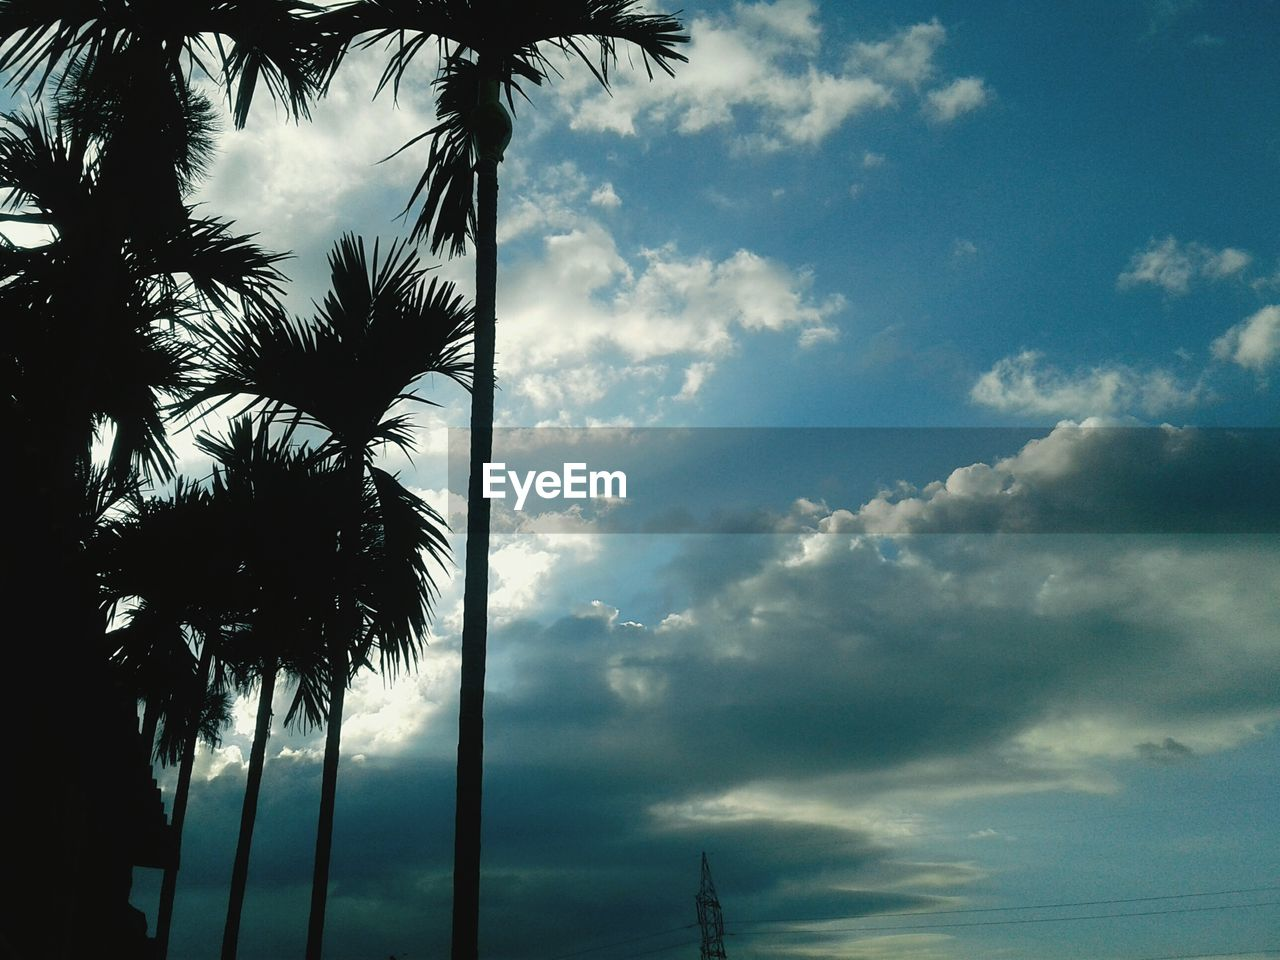 cloud - sky, tree, sky, palm tree, tropical climate, plant, beauty in nature, nature, no people, low angle view, tranquility, day, outdoors, silhouette, growth, tranquil scene, tree trunk, scenics - nature, trunk, tropical tree, coconut palm tree, palm leaf